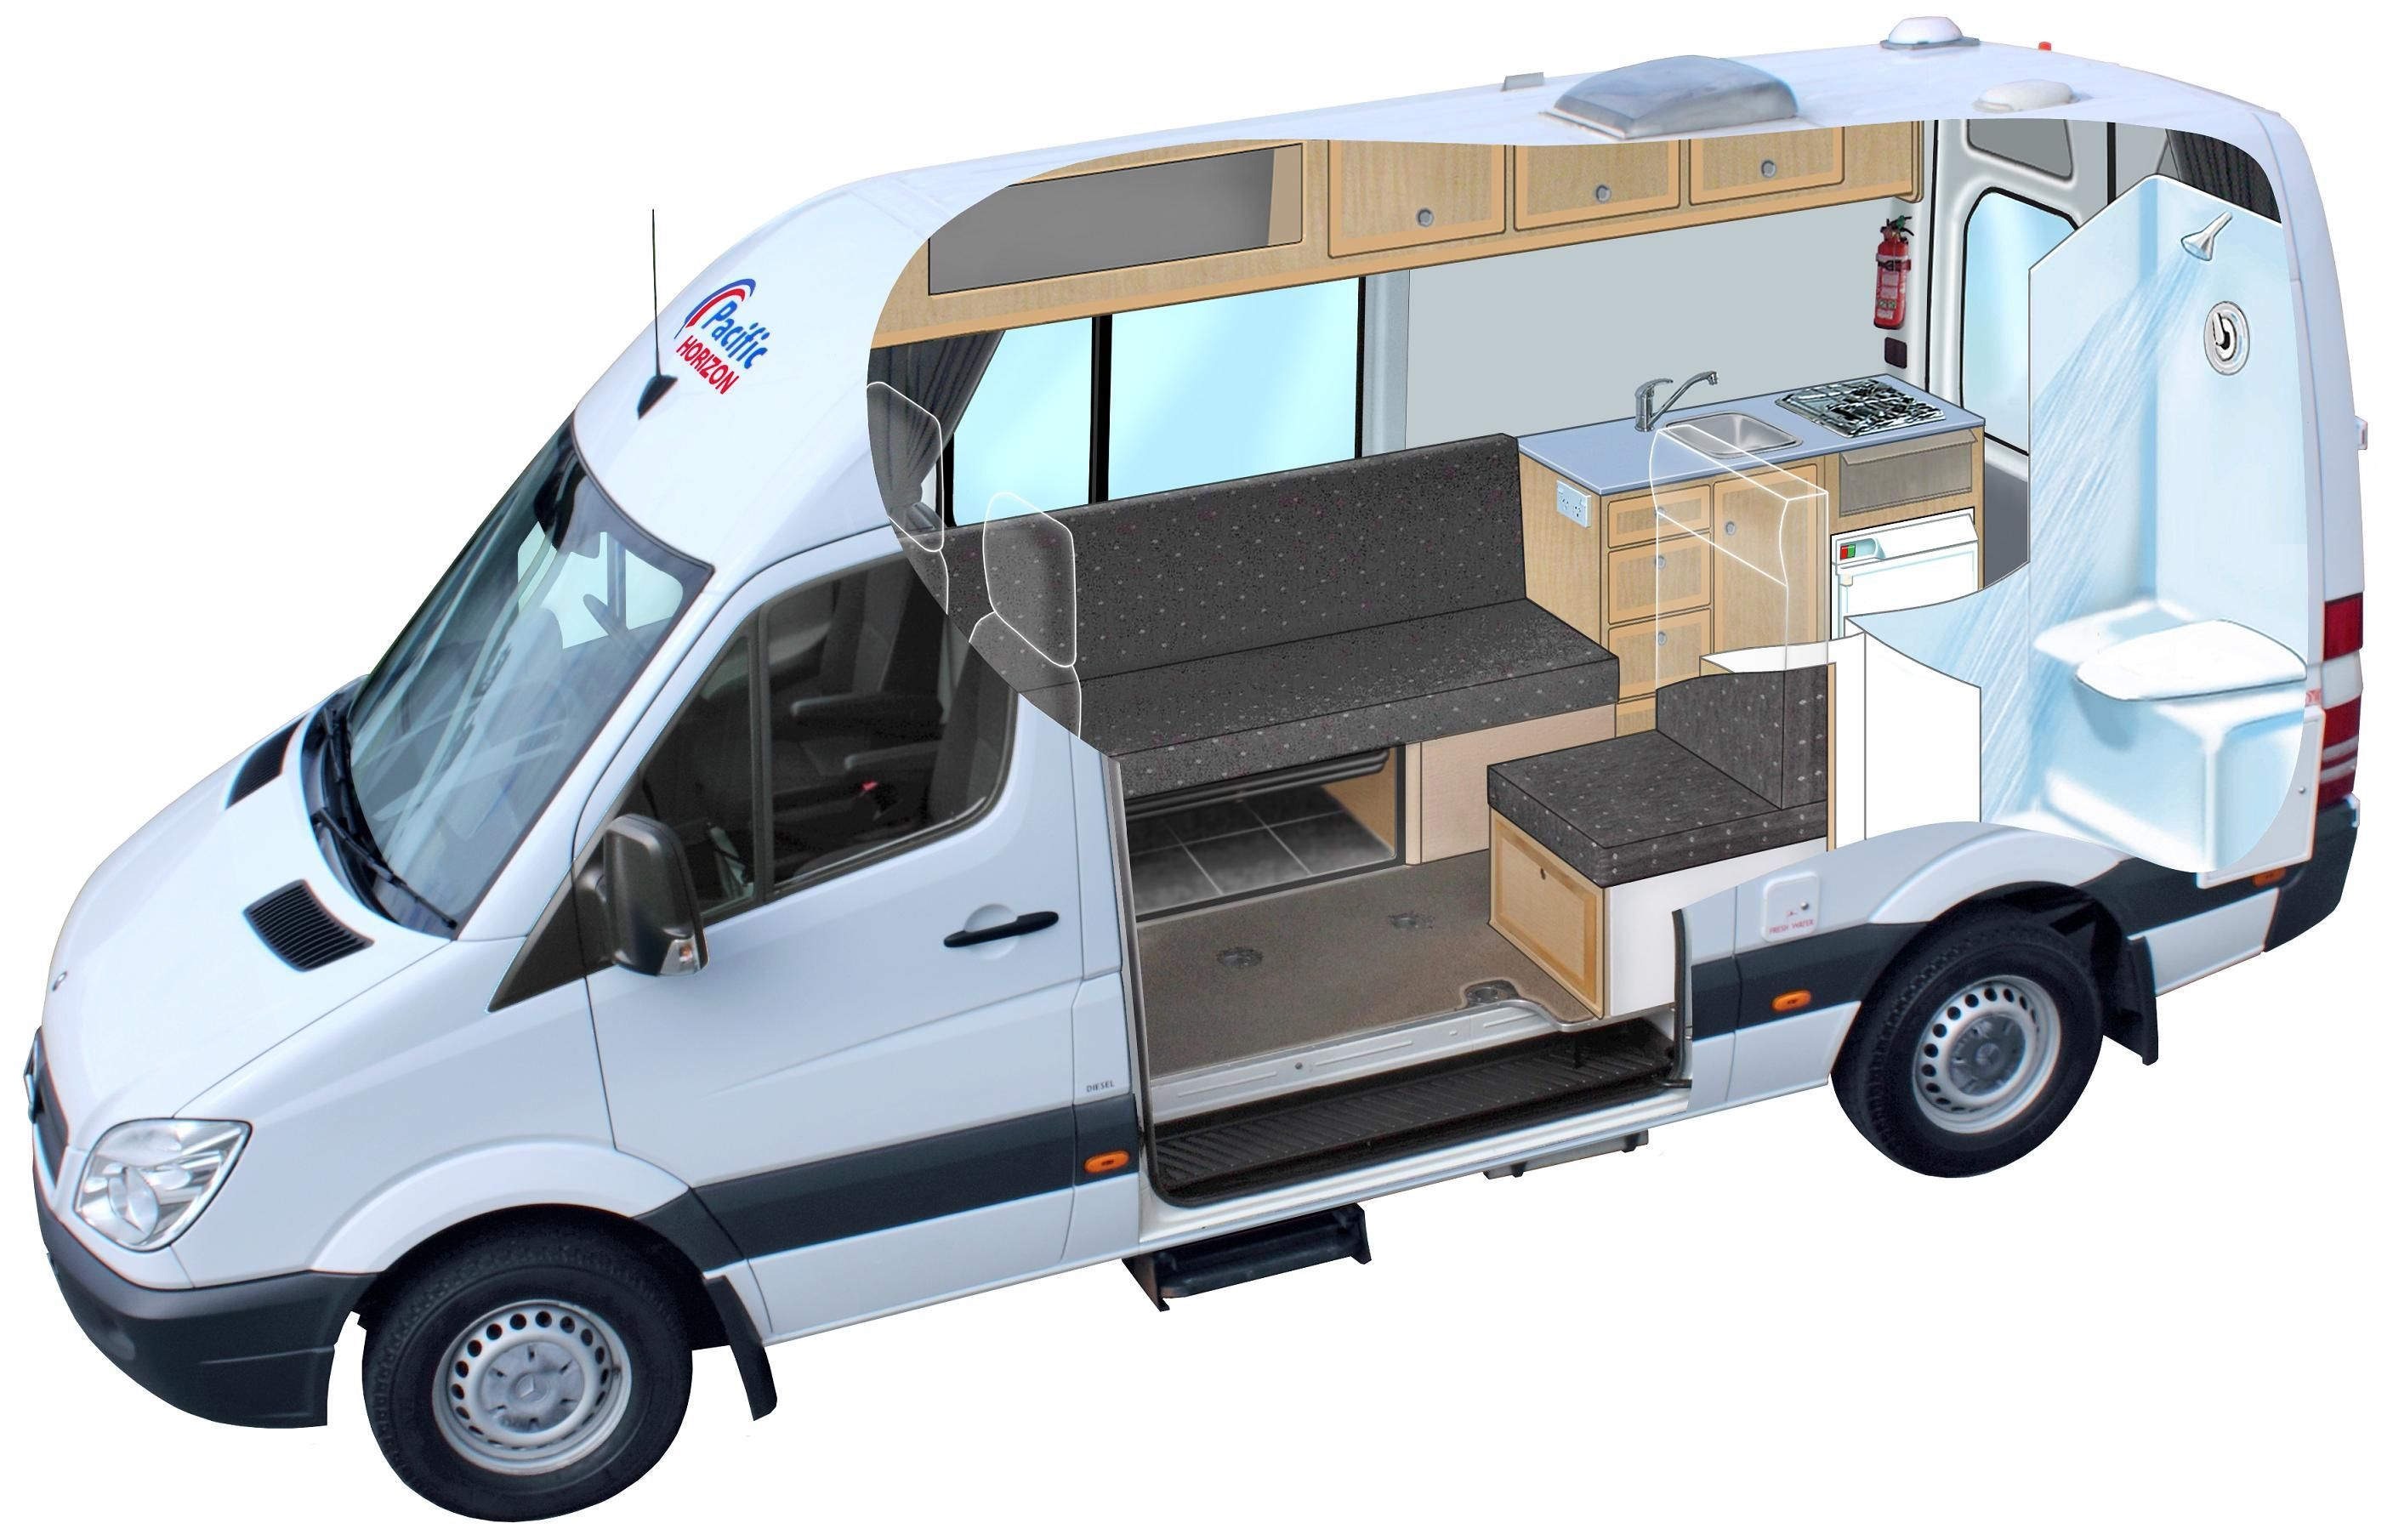 siesta sale benz how motorhome tips much with rv front for tow small can a sprinter you mercedes